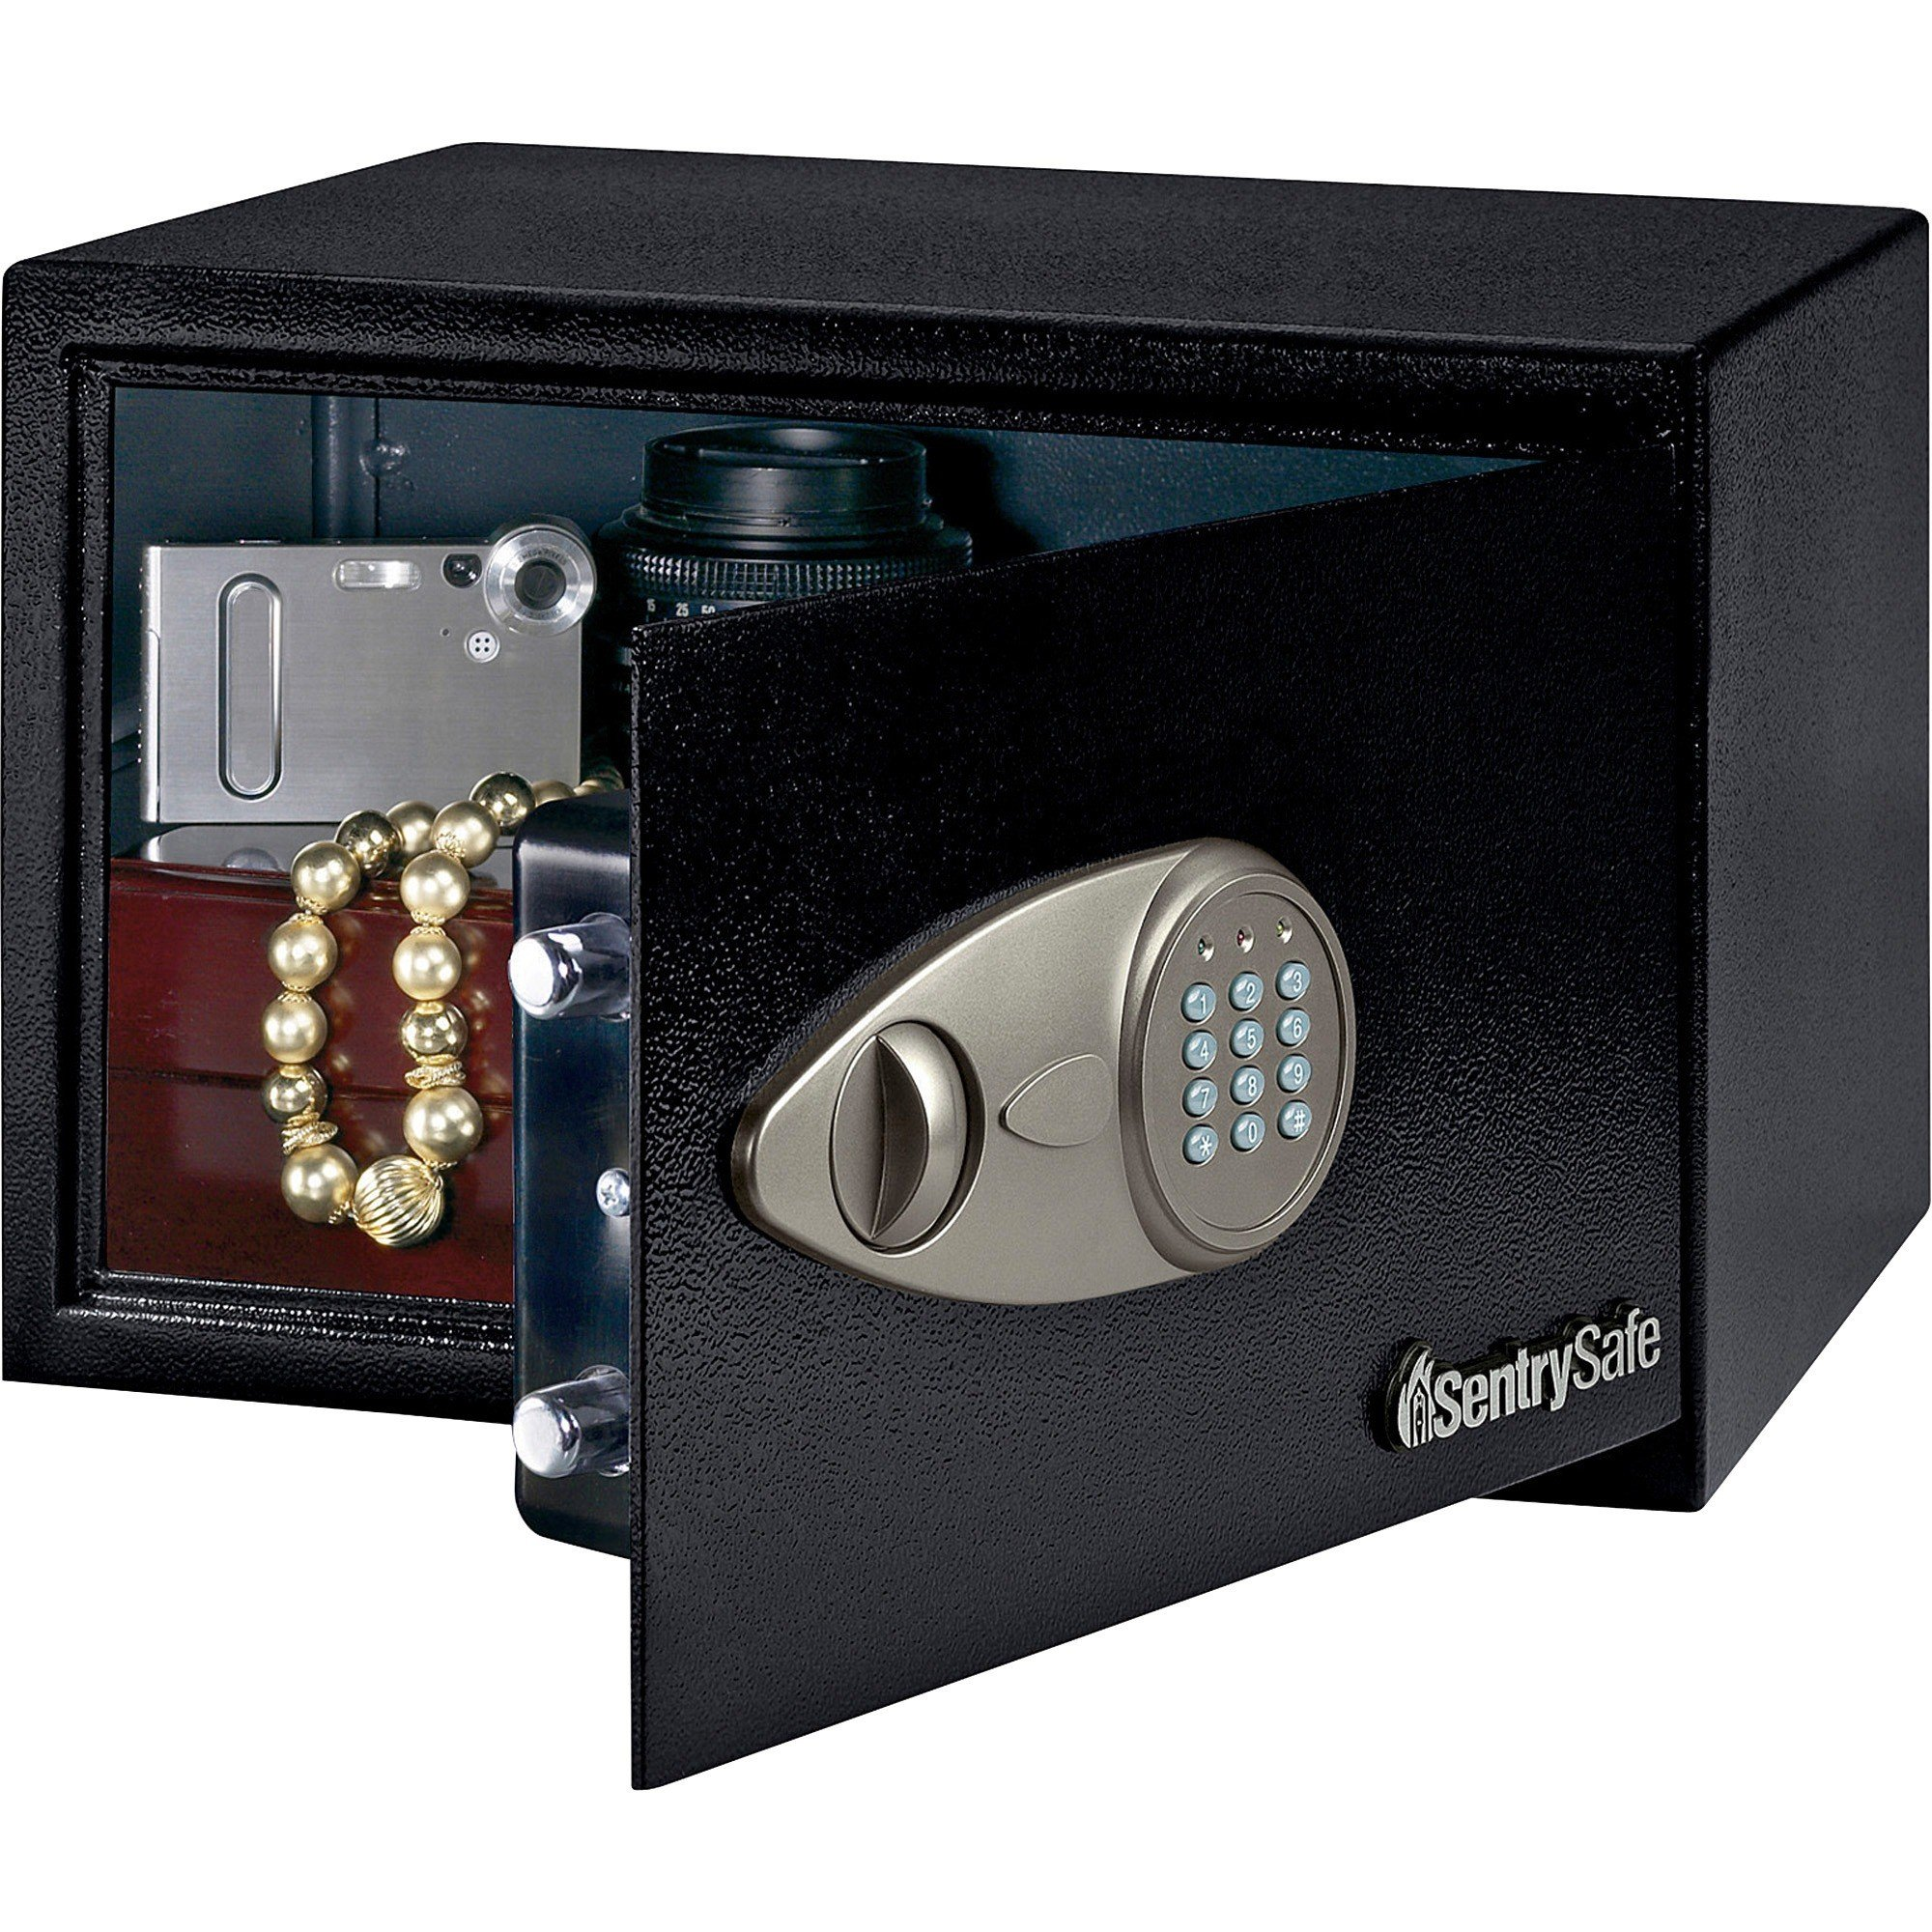 "Sentry Safe Small Security Safe with Electronic Lock 8.5"" x 13.6"" x 8.6"""